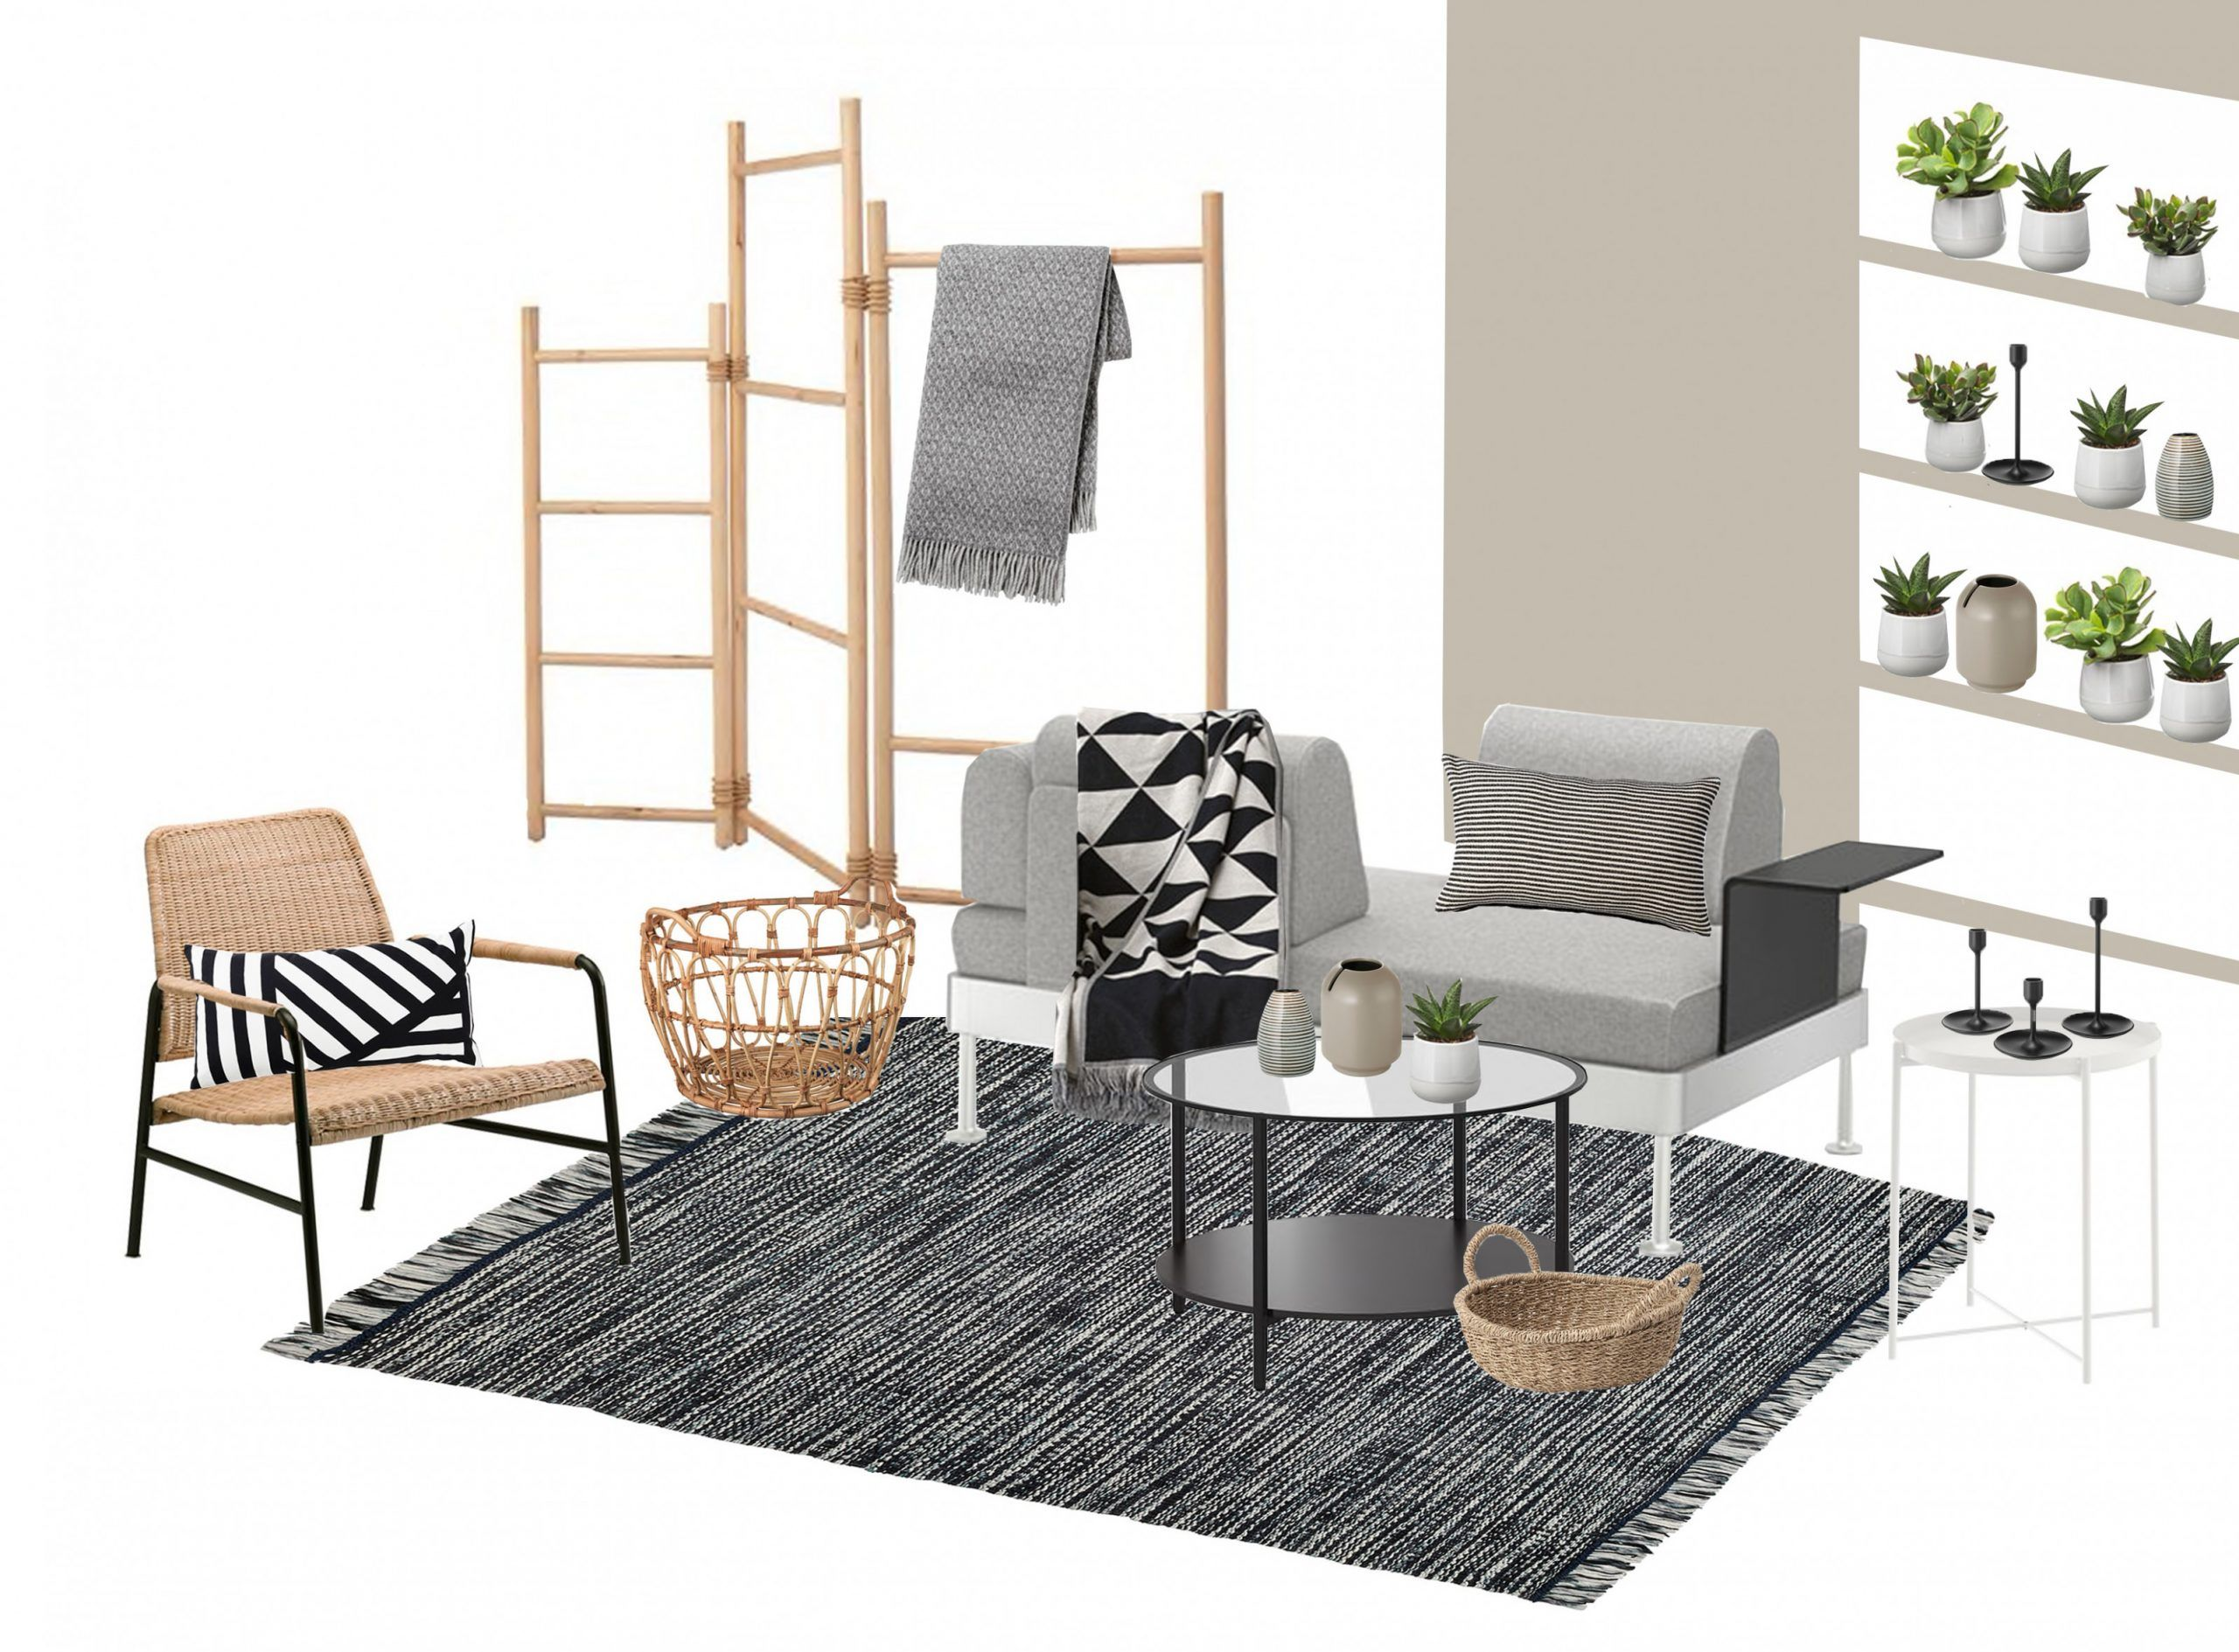 13 Ikea Living Room Mood Board di 2020